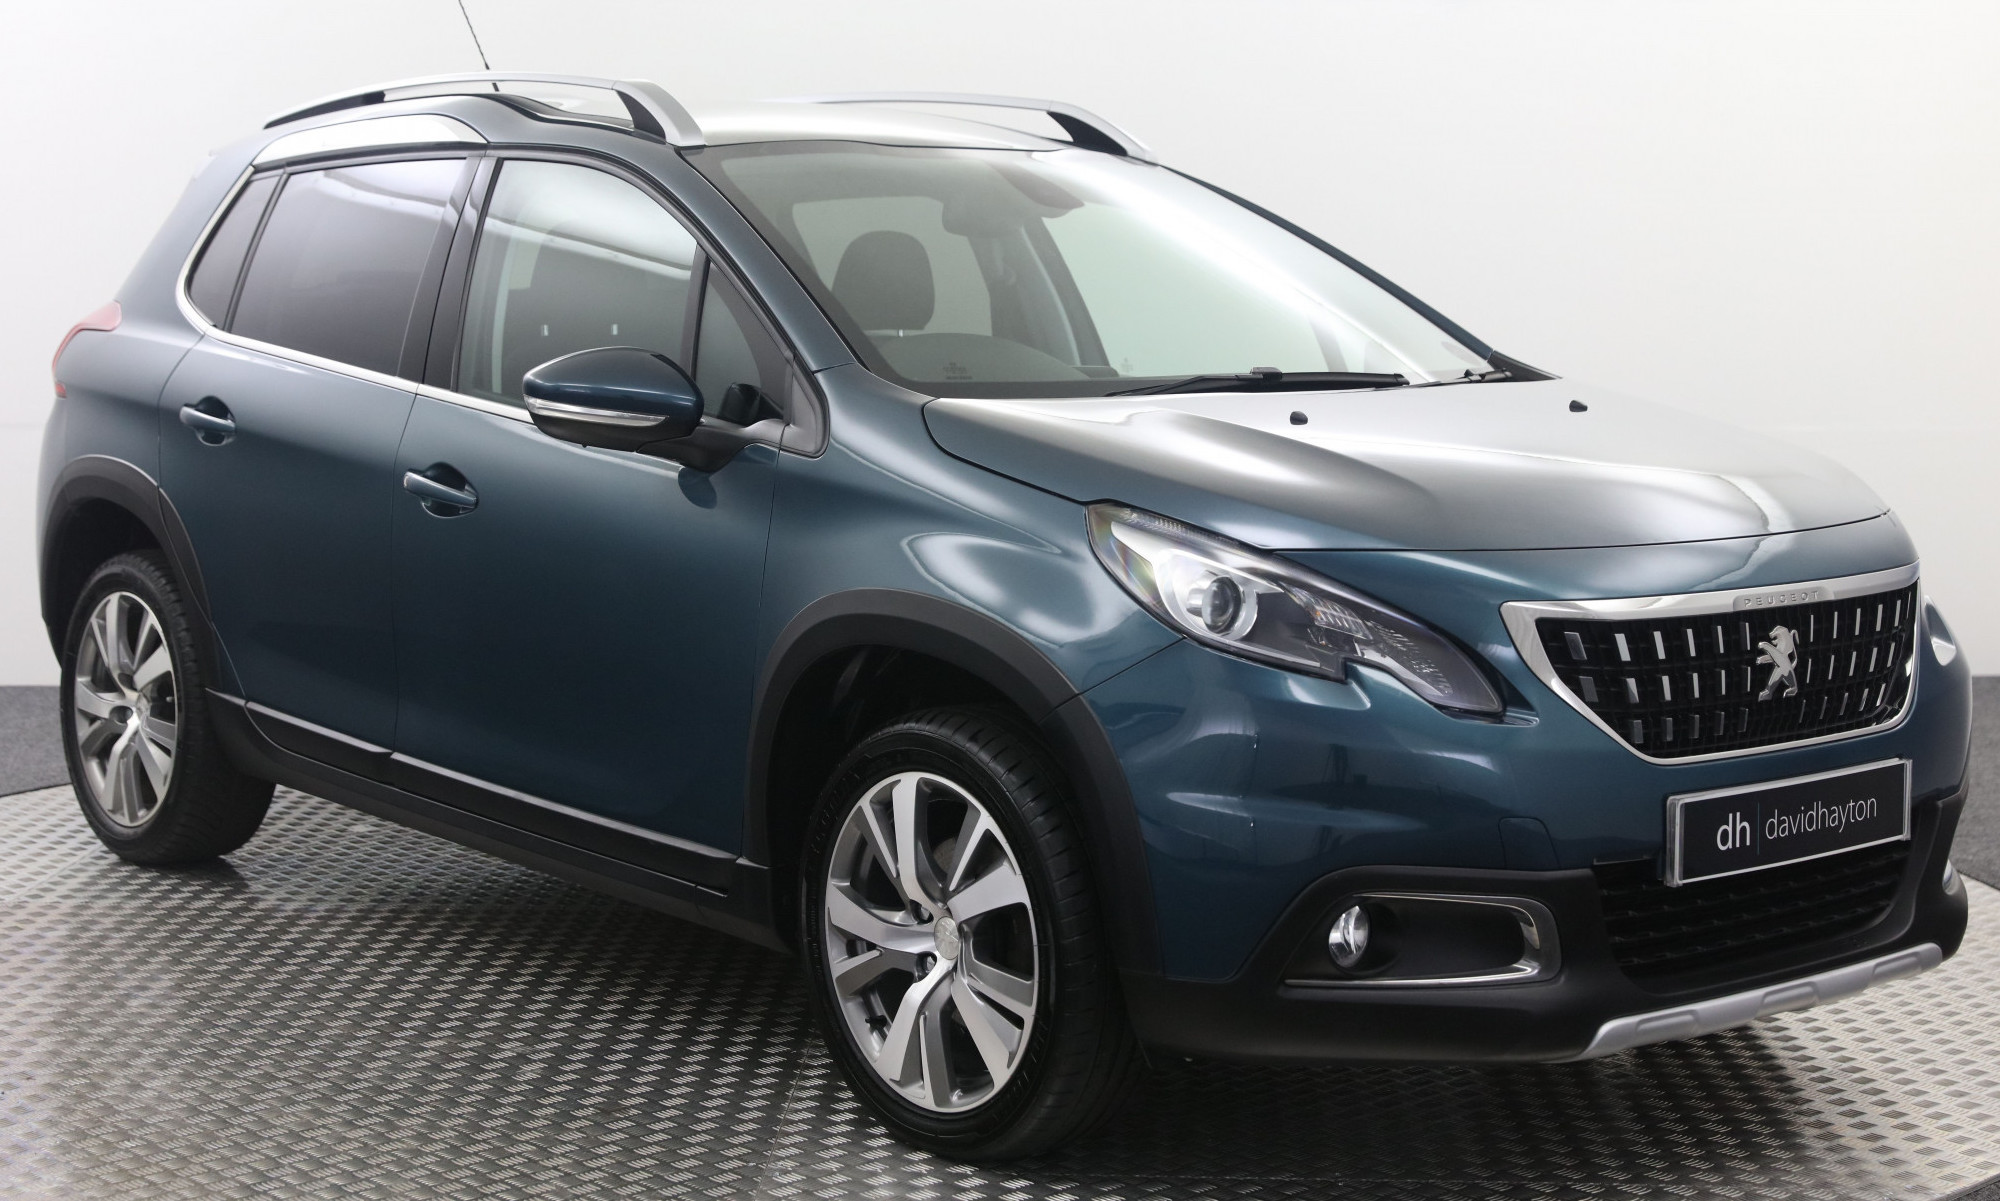 Blue Peugeot 2008 facing 3/4 right